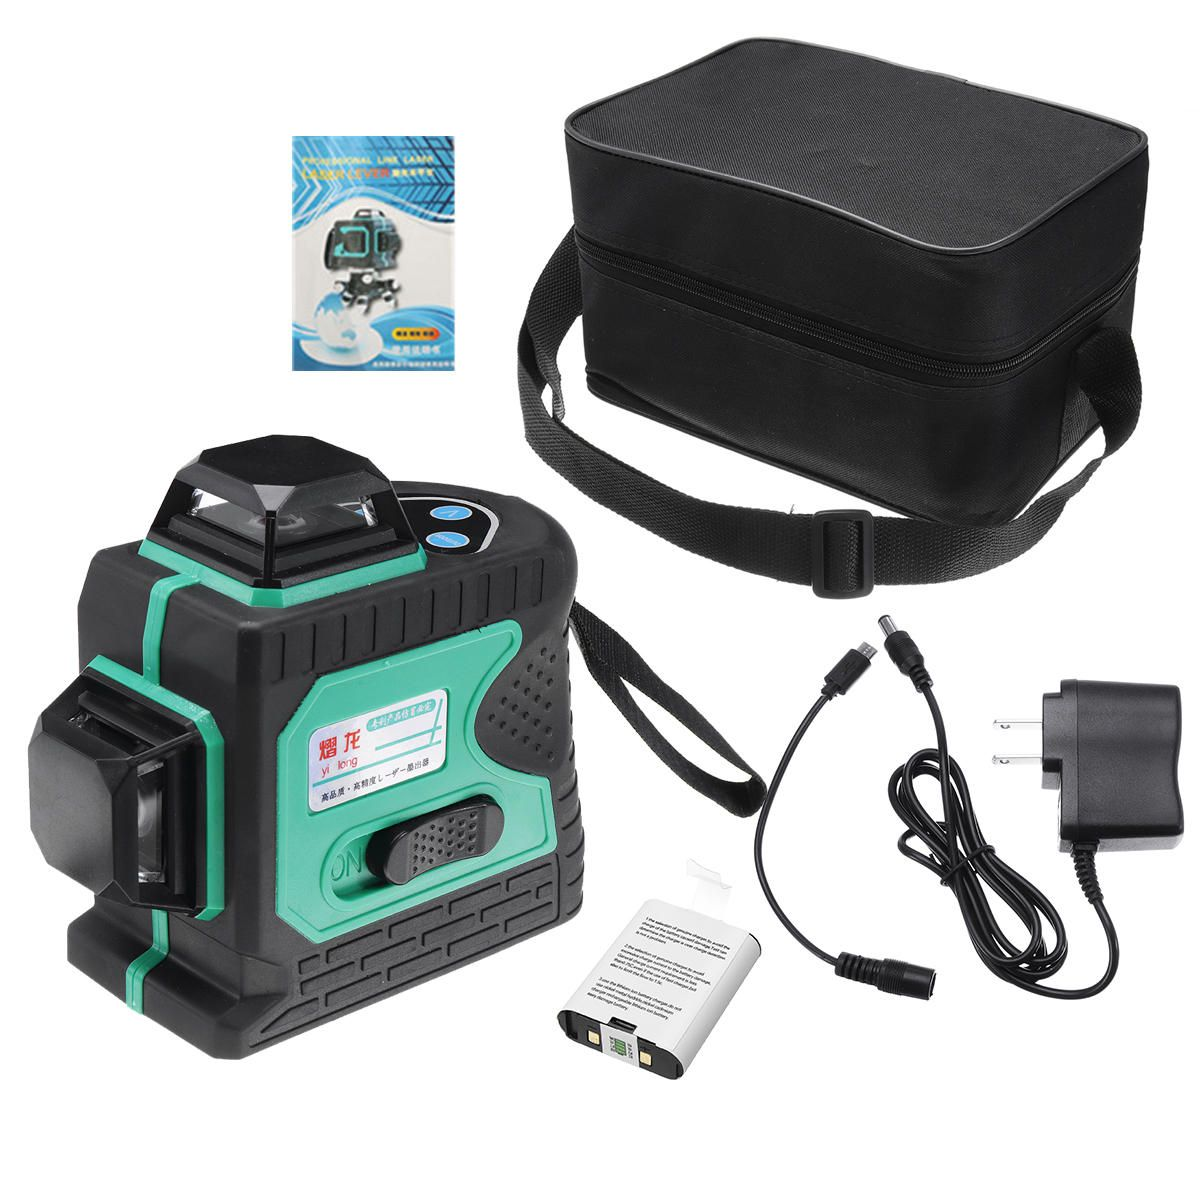 Blue green Light 12 line Outdoor Strong Laser Level Infrared Light High precision Automatic